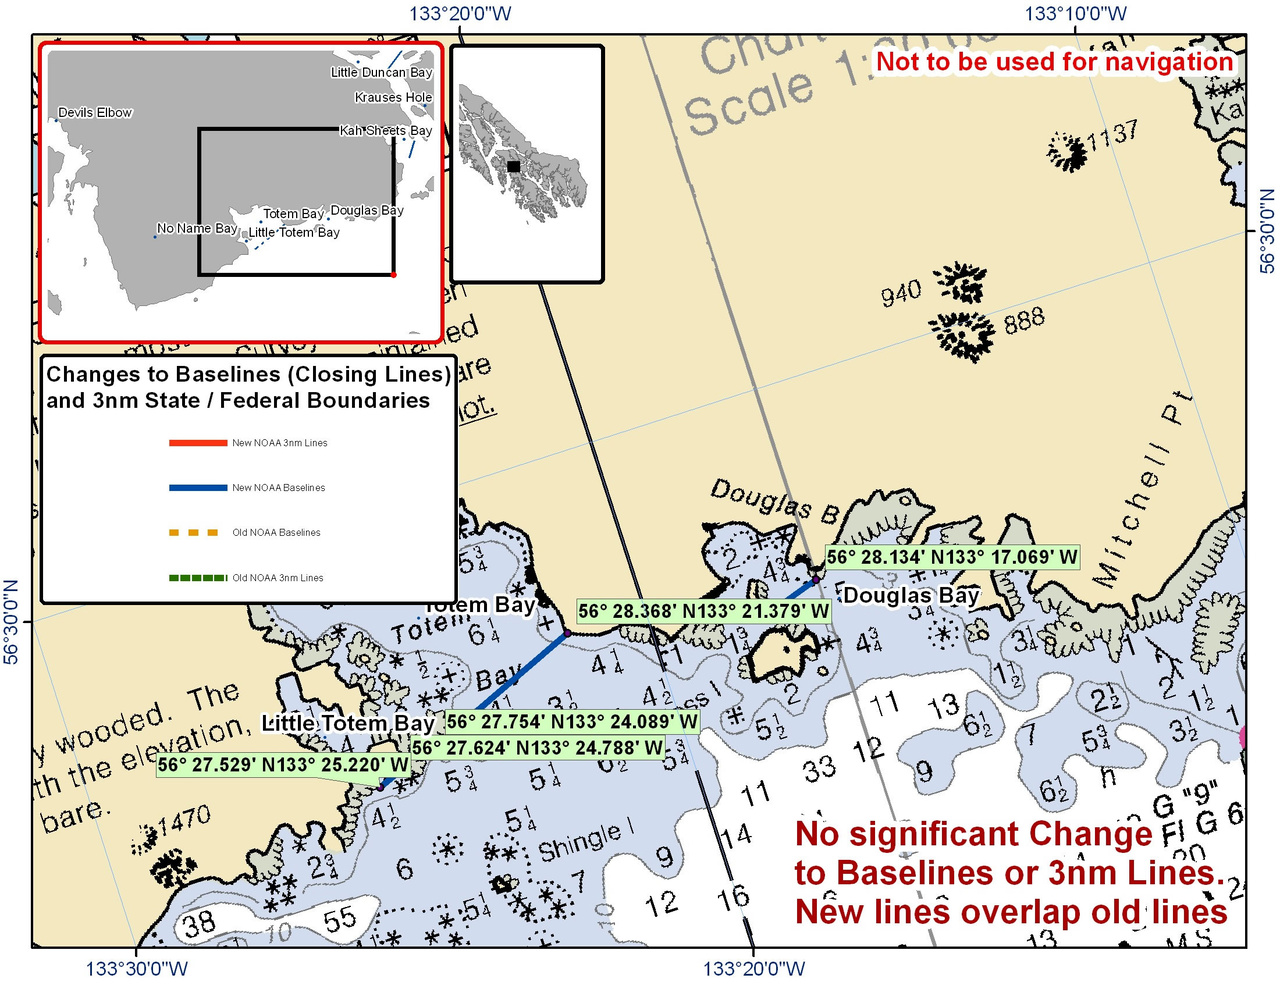 Chart for Douglas Bay and Totem Bay